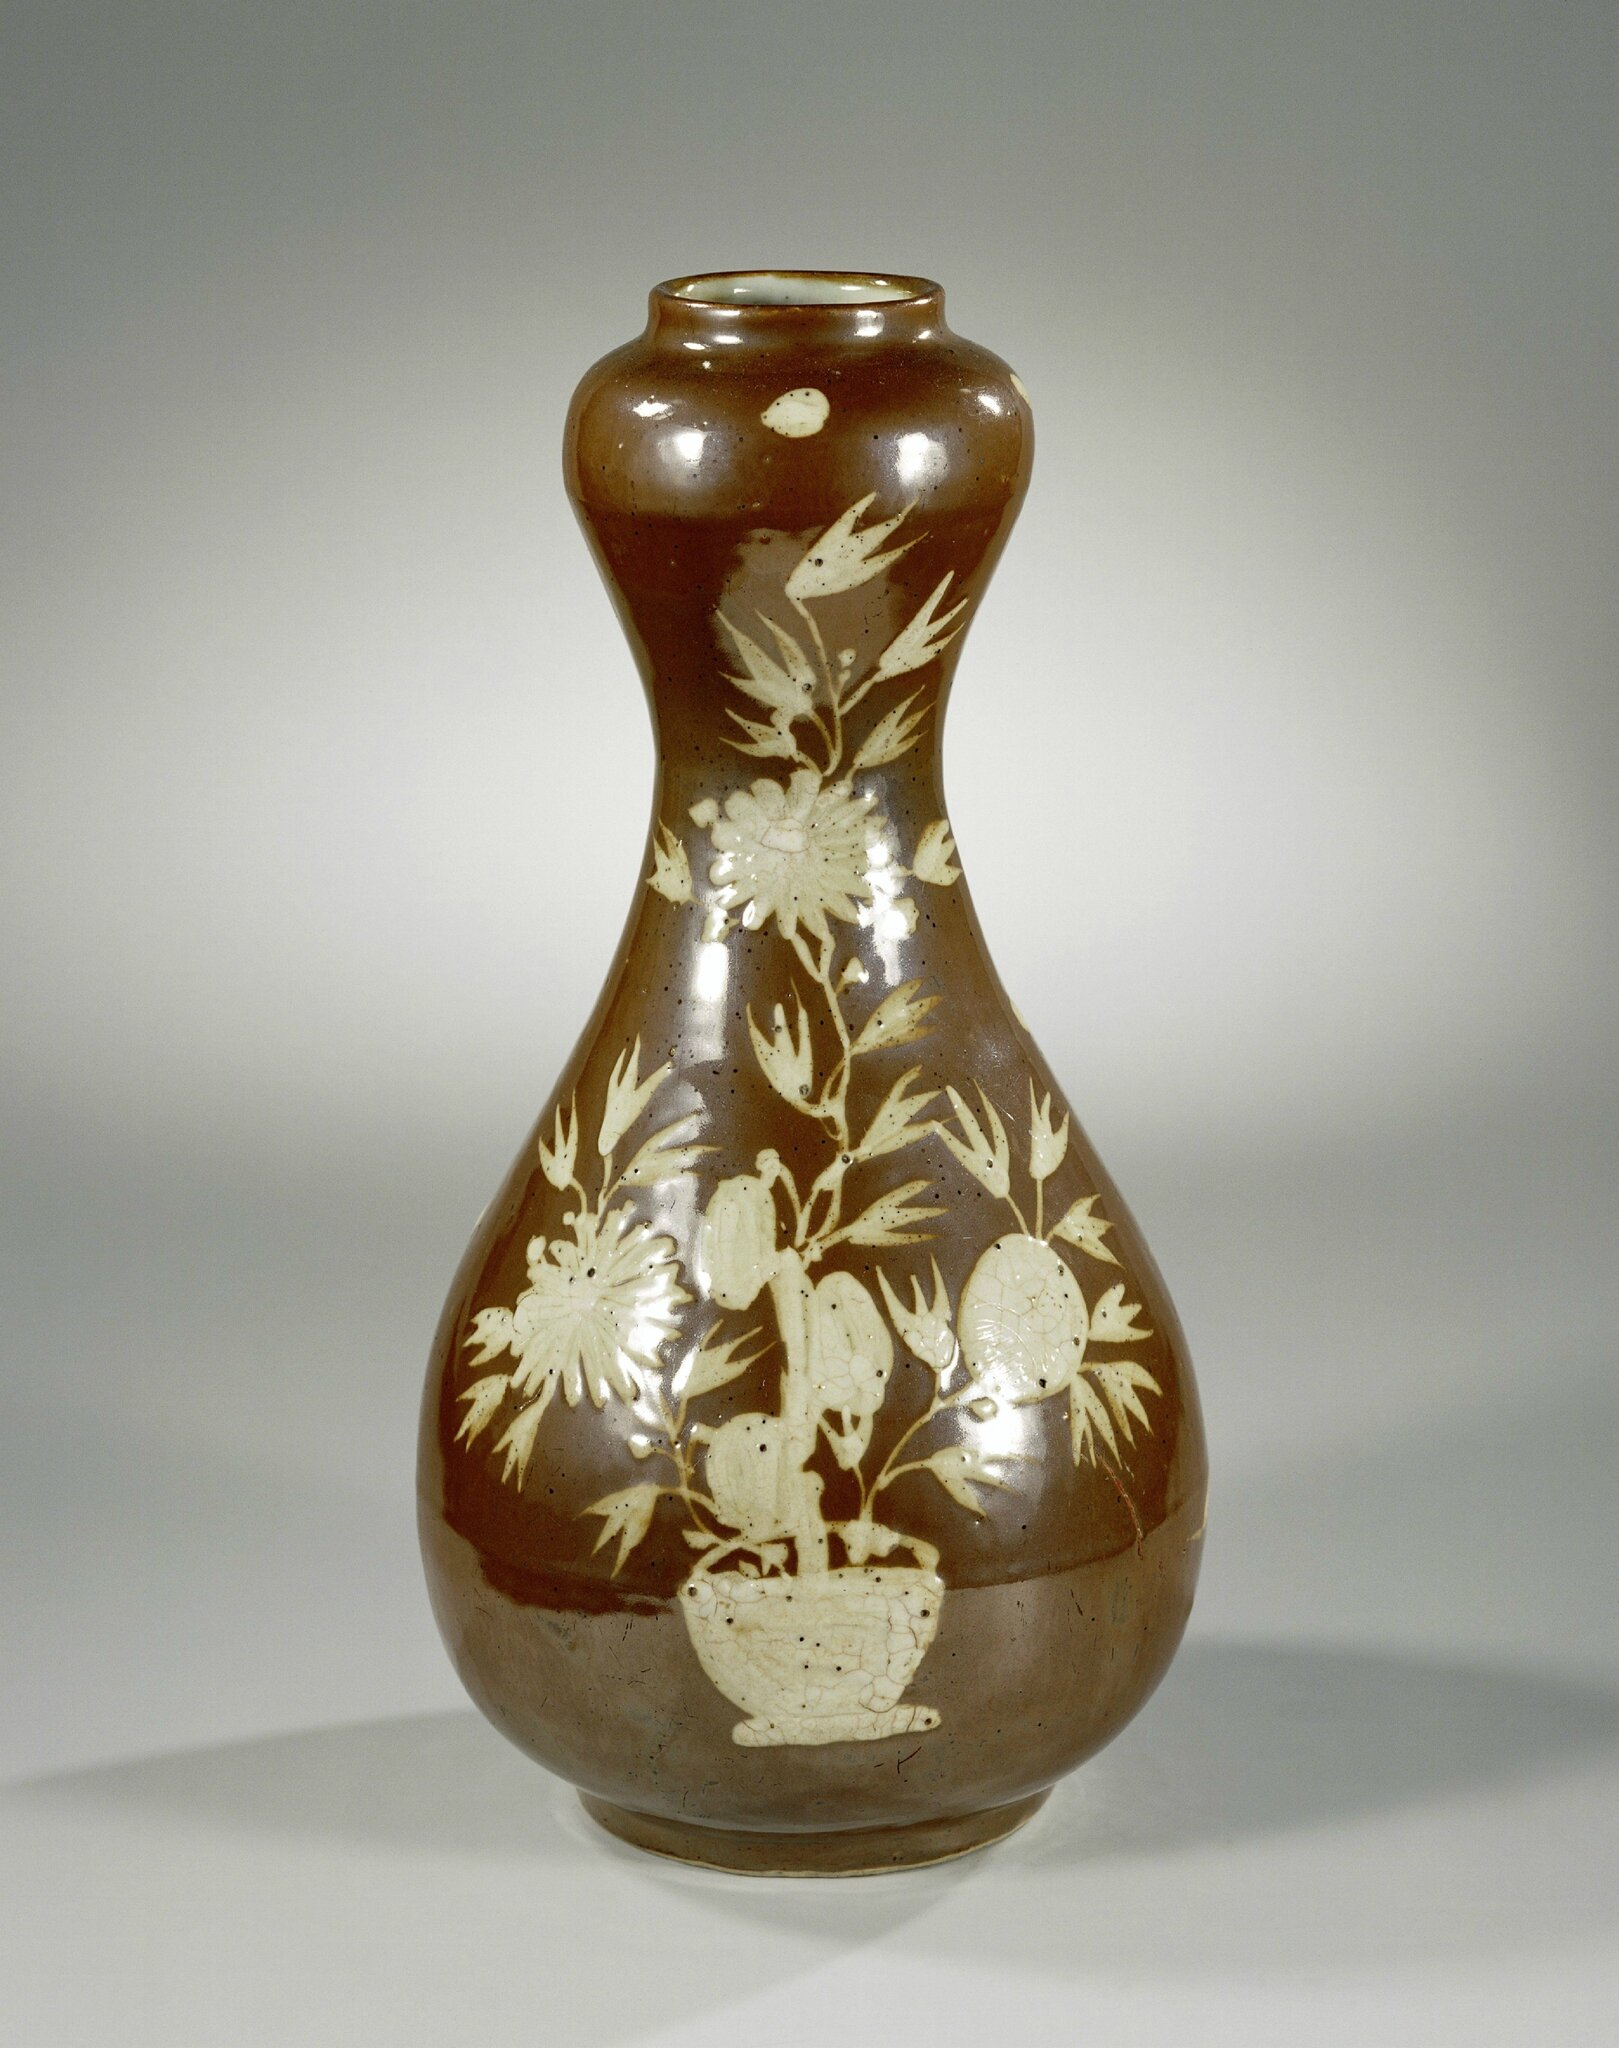 Vase with flowers in white on a brown glaze, Wanli period, c